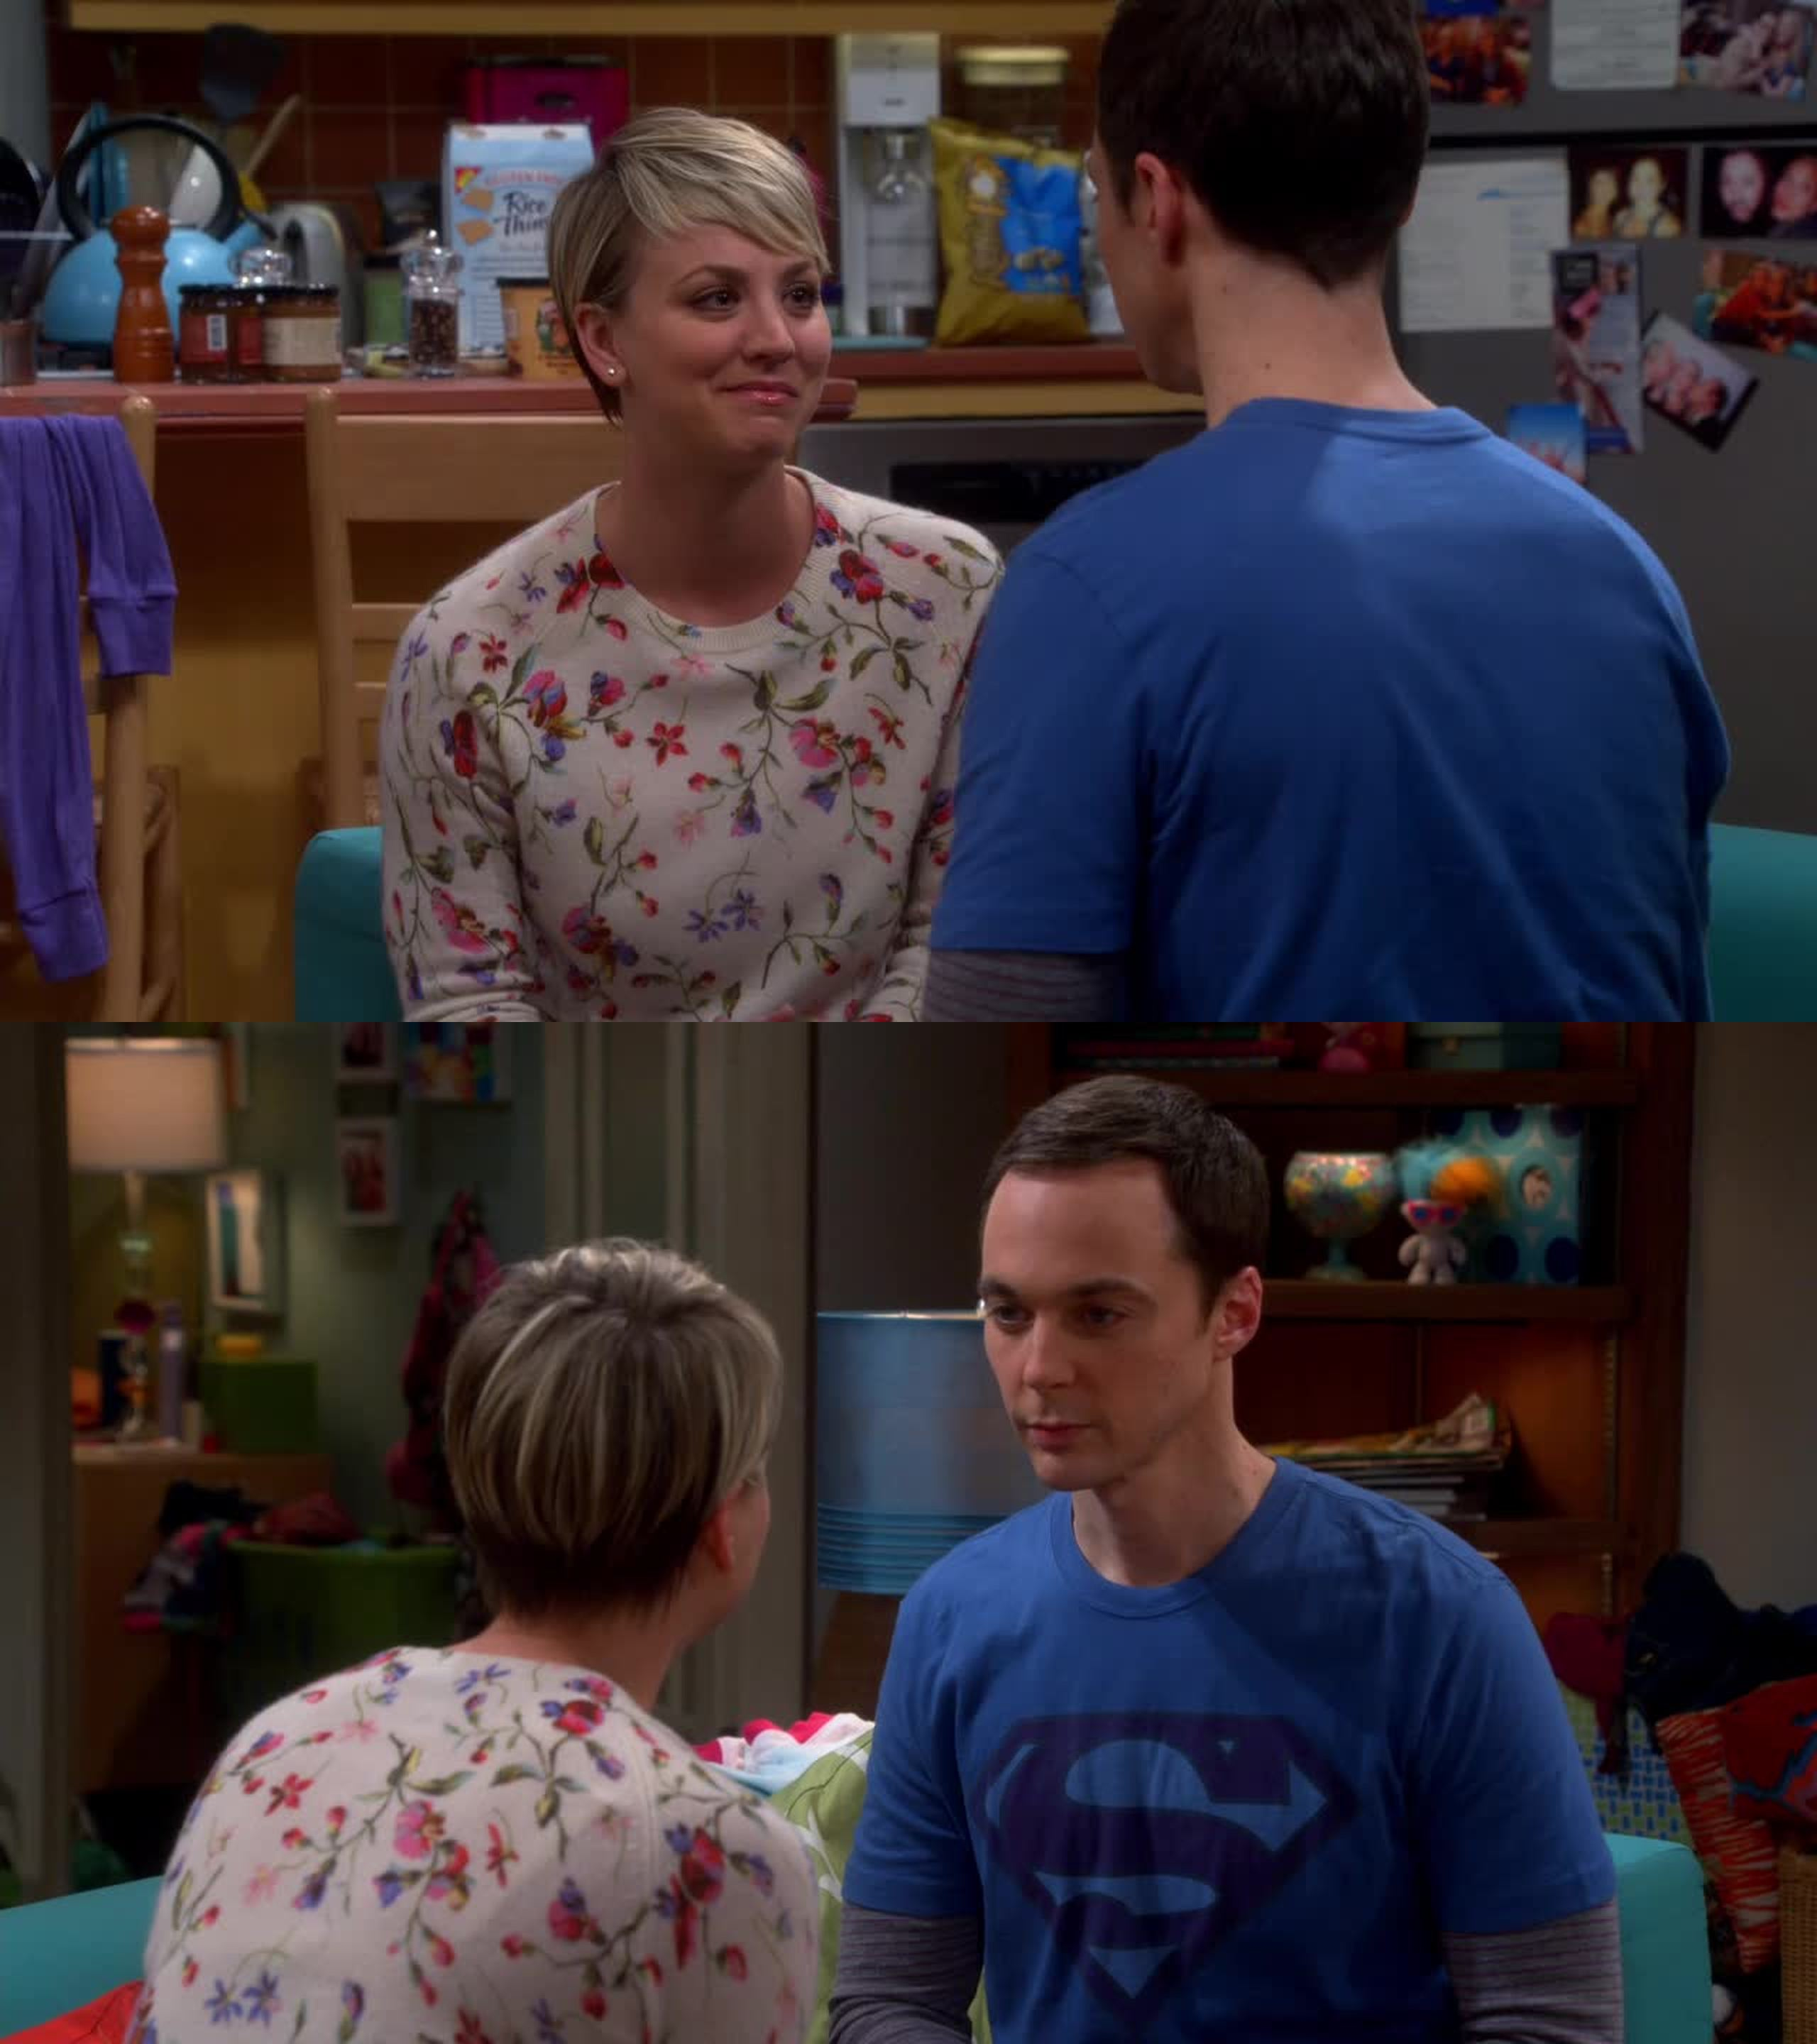 I absolutely adored the scenes with Penny and Sheldon. Such an unique and heart-warming friendship.